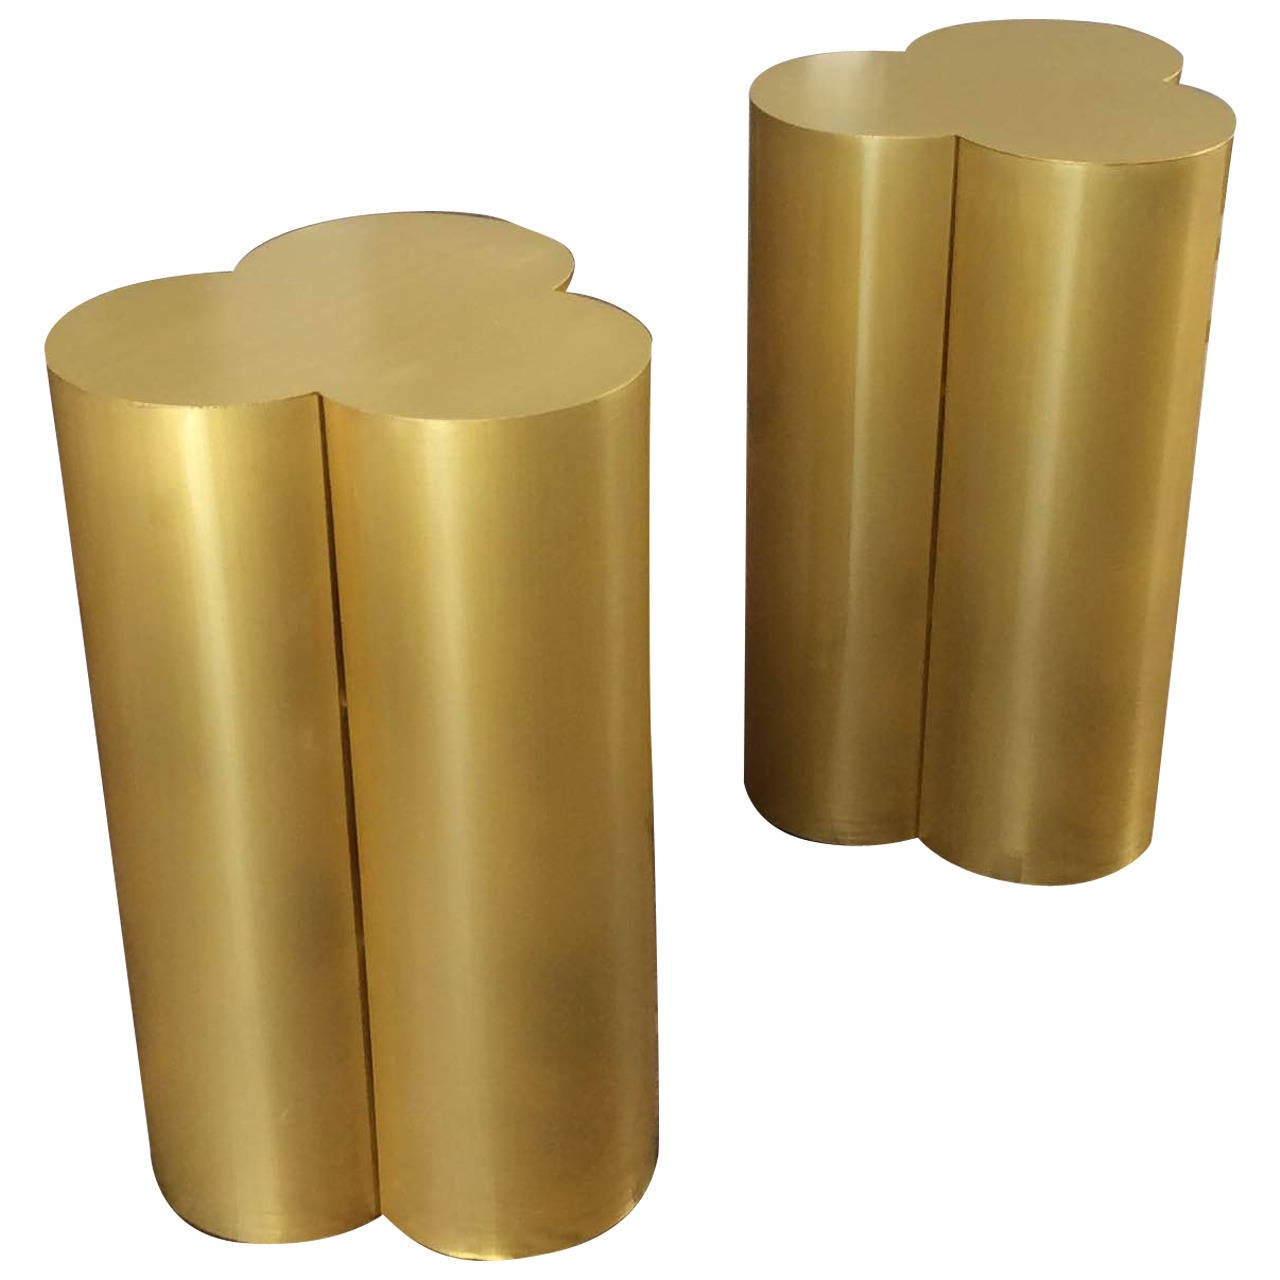 this custom trefoil dining table pedestal bases in polished brass is